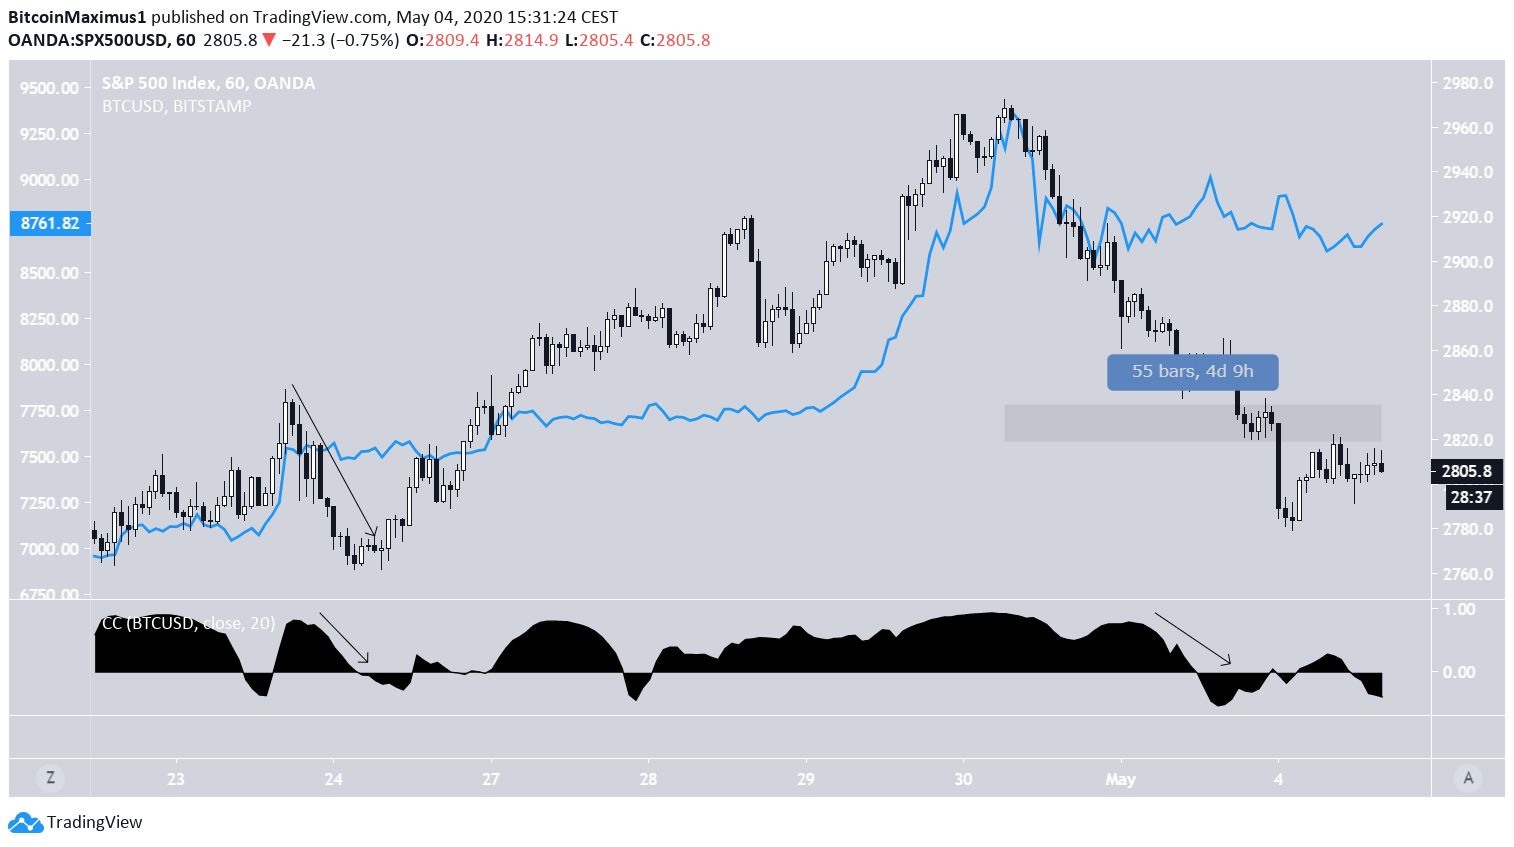 Bitcoin and SP500